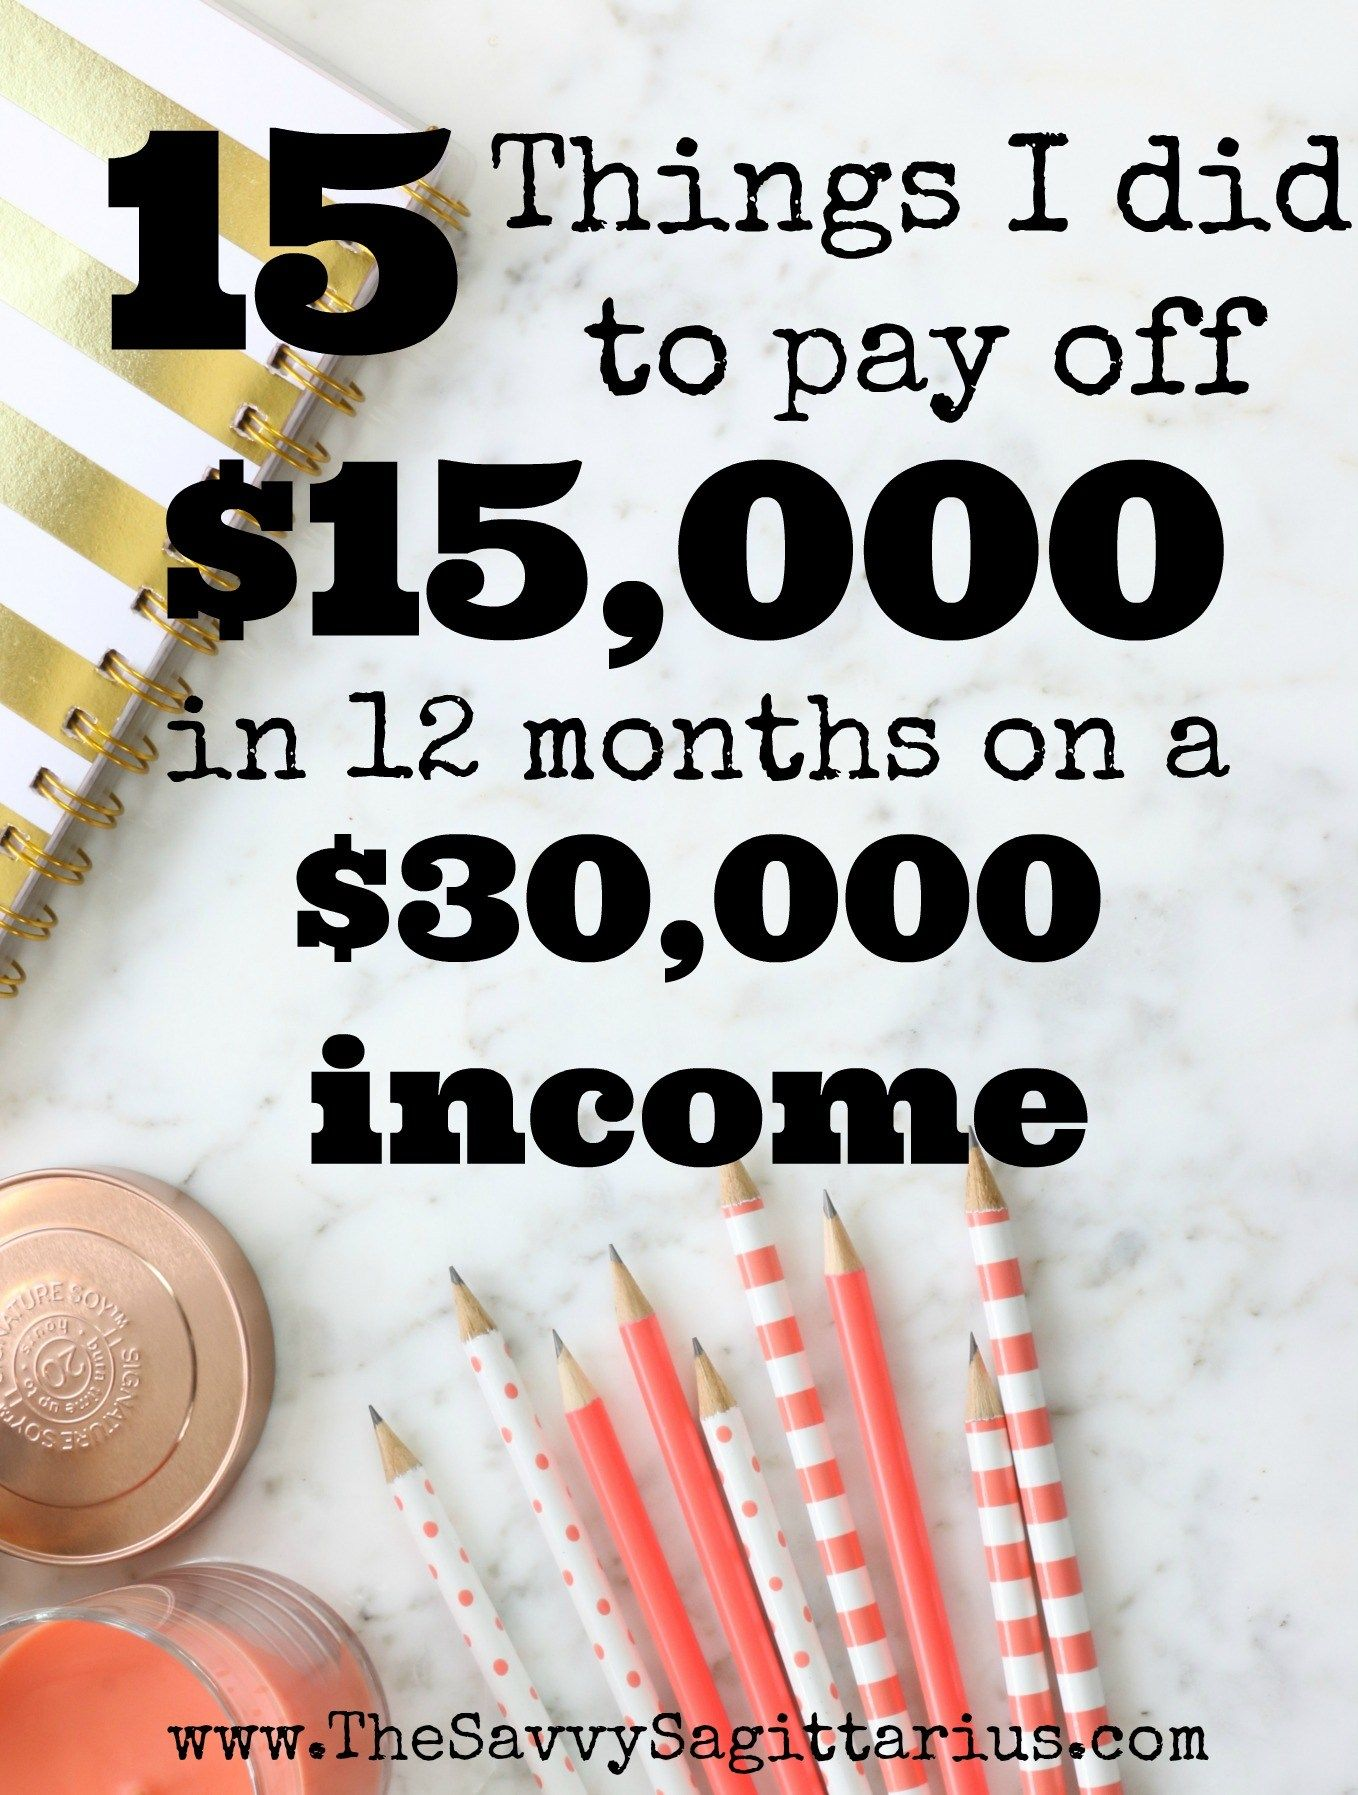 15 Things I Did To Pay off $15,000 on a $30,000 Annual Income 15 Things I Did To Pay off $15,000 on a $30,000 Annual Income